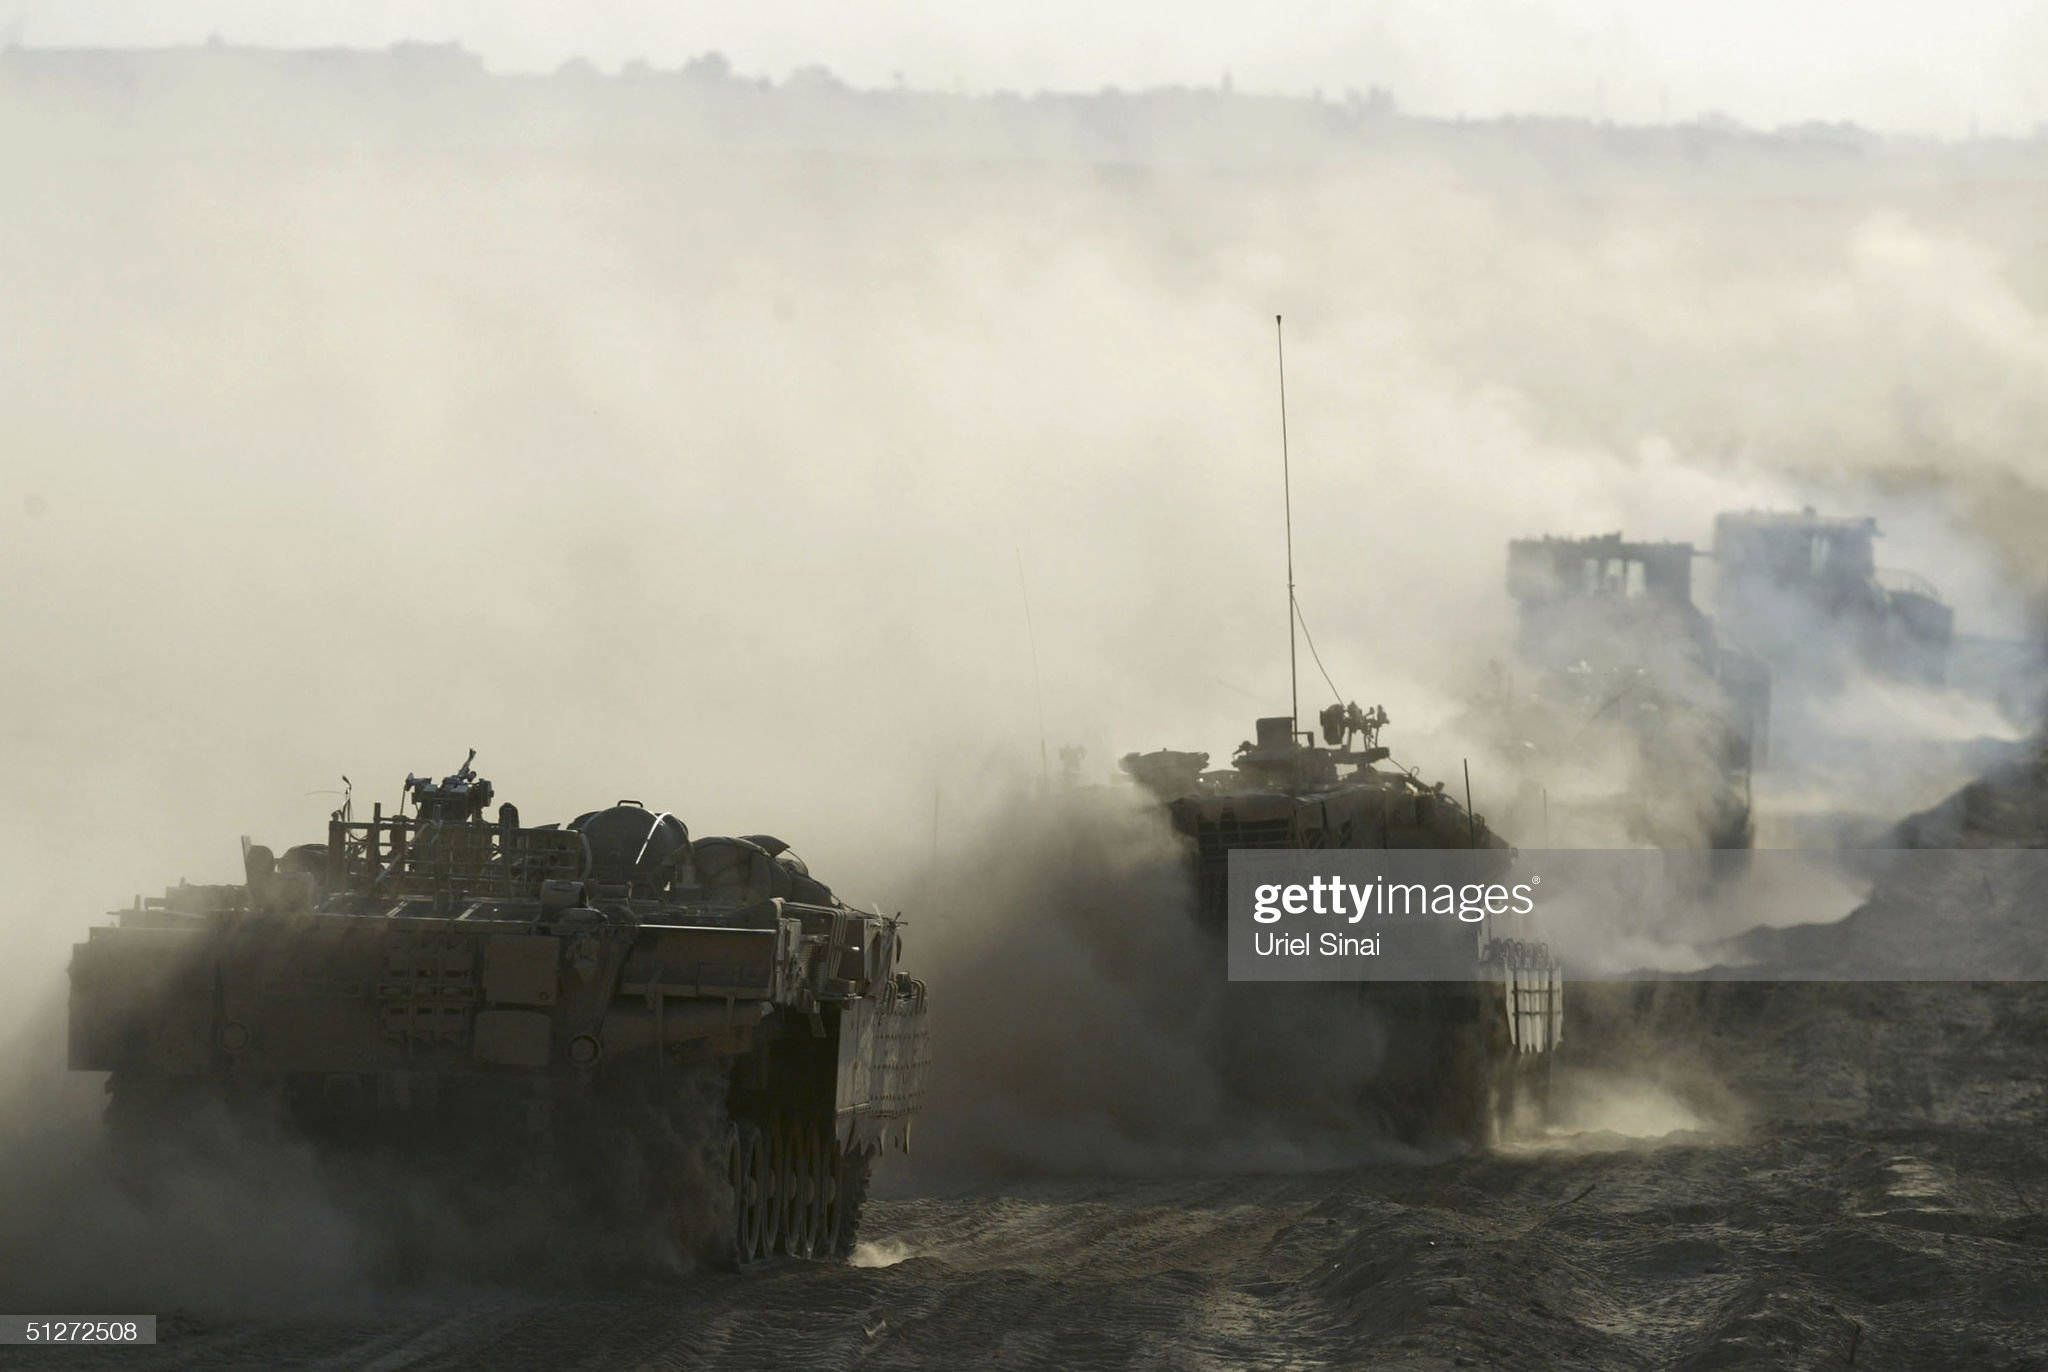 https://media.gettyimages.com/photos/israeli-army-vehicles-drive-from-israel-into-gaza-on-september-8-2004-picture-id51272508?s=2048x2048